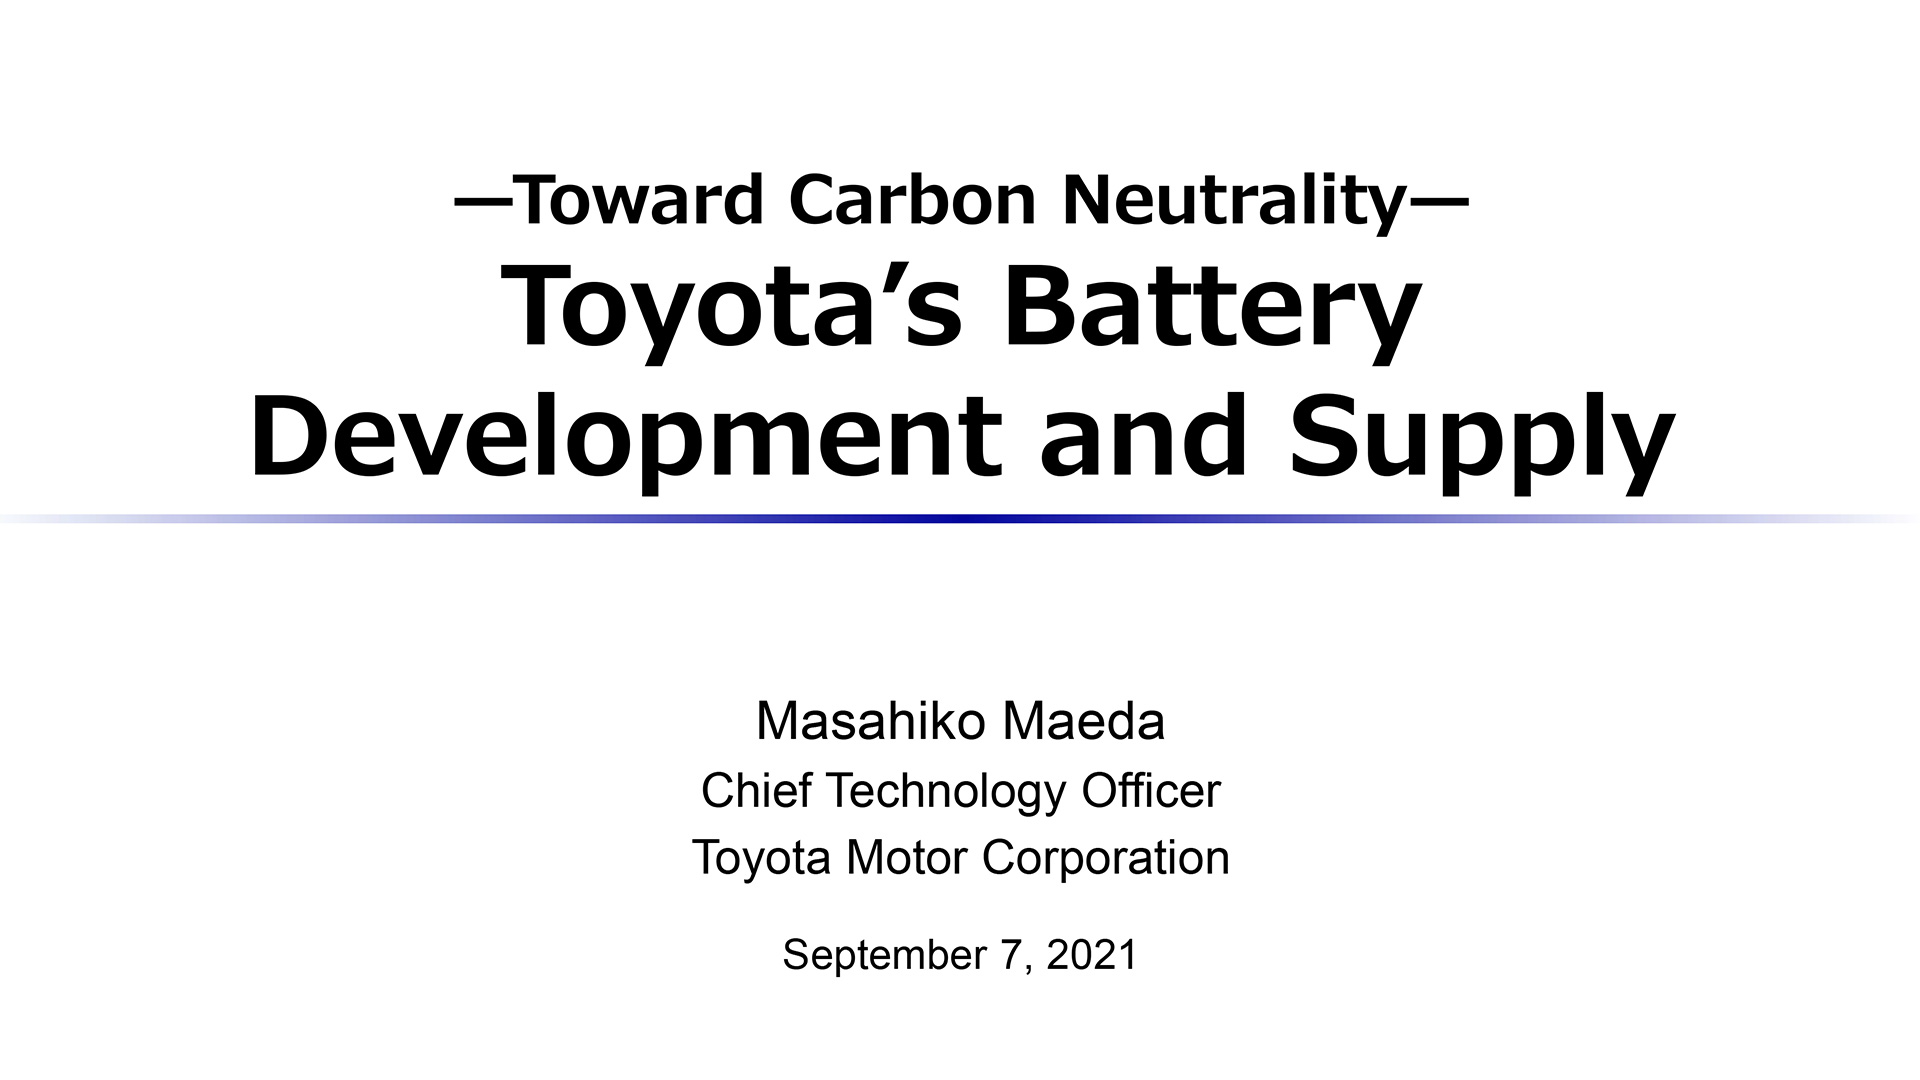 Toyota's Battery Development and Supply